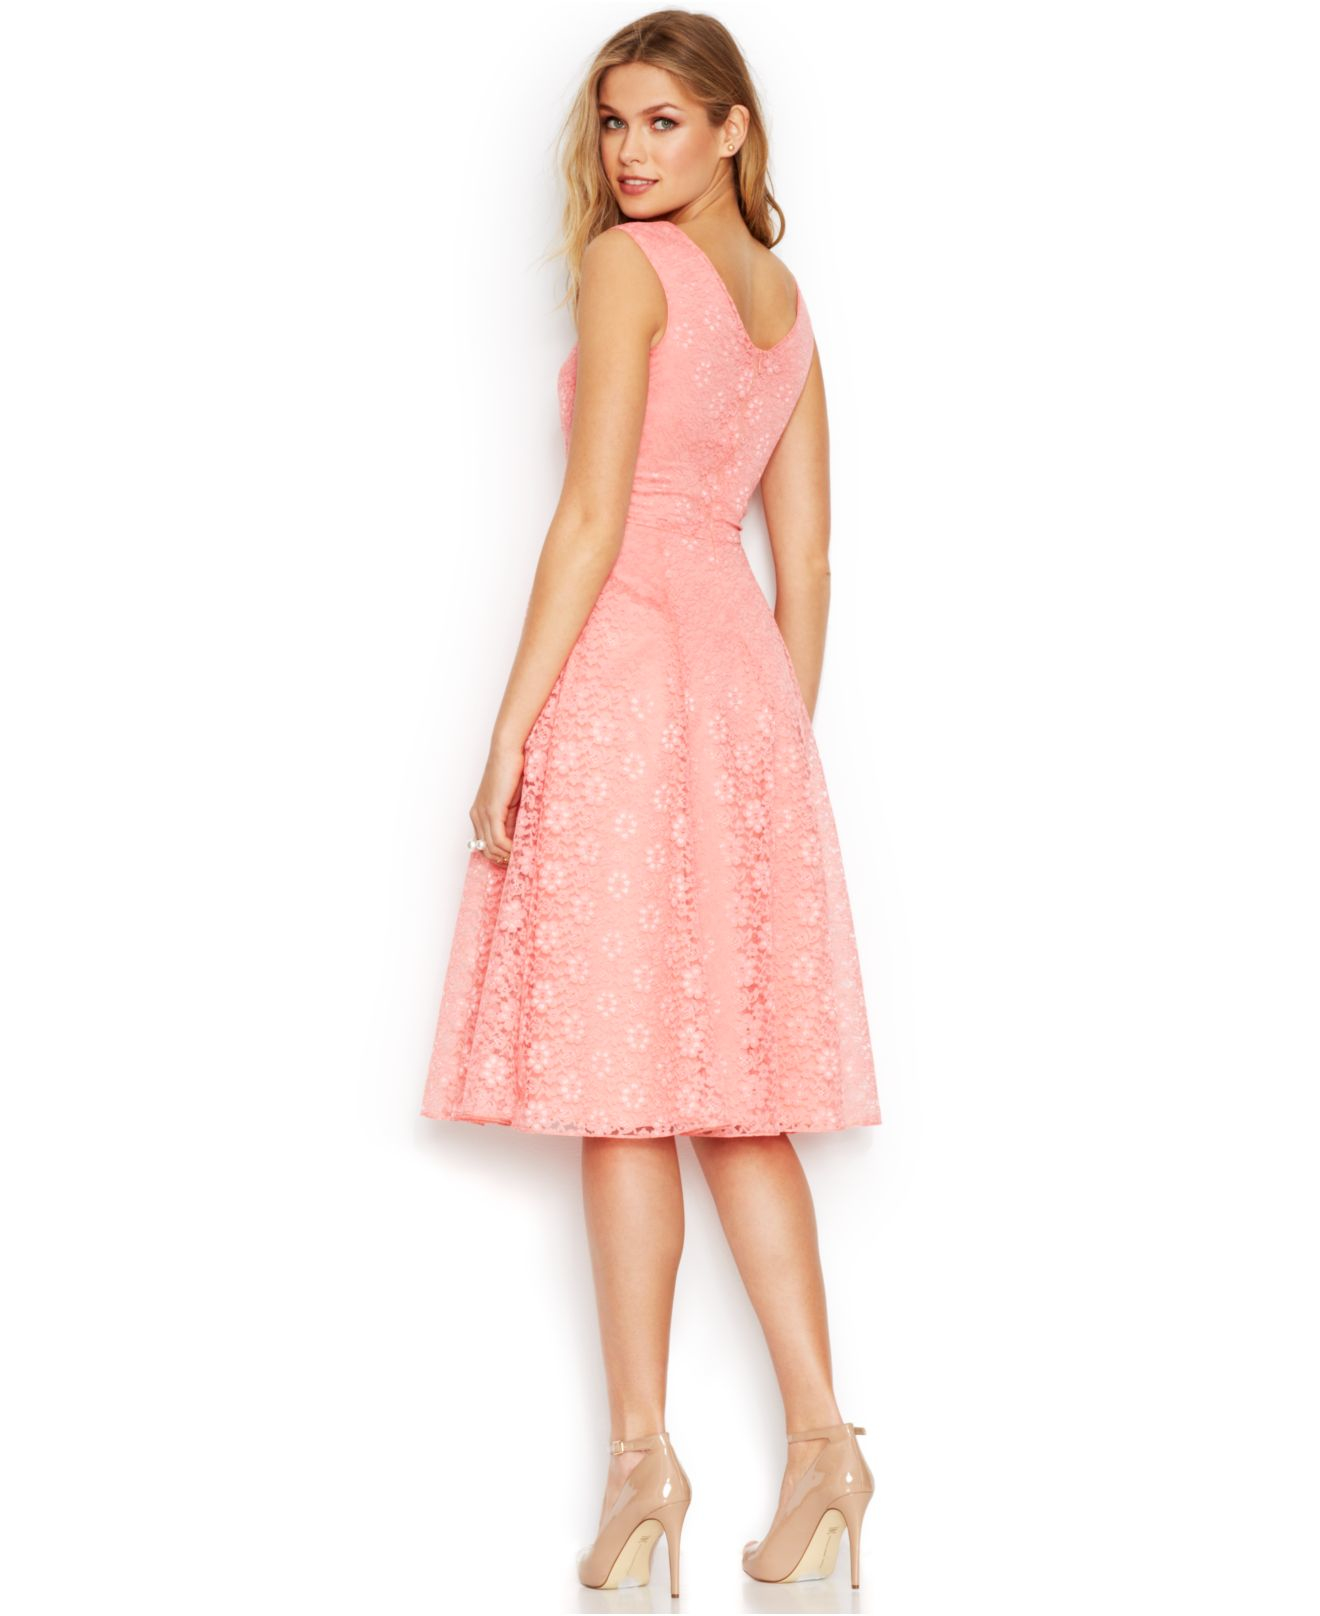 Betsey Johnson Floral Lace Tea Length Dress In Coral Pink